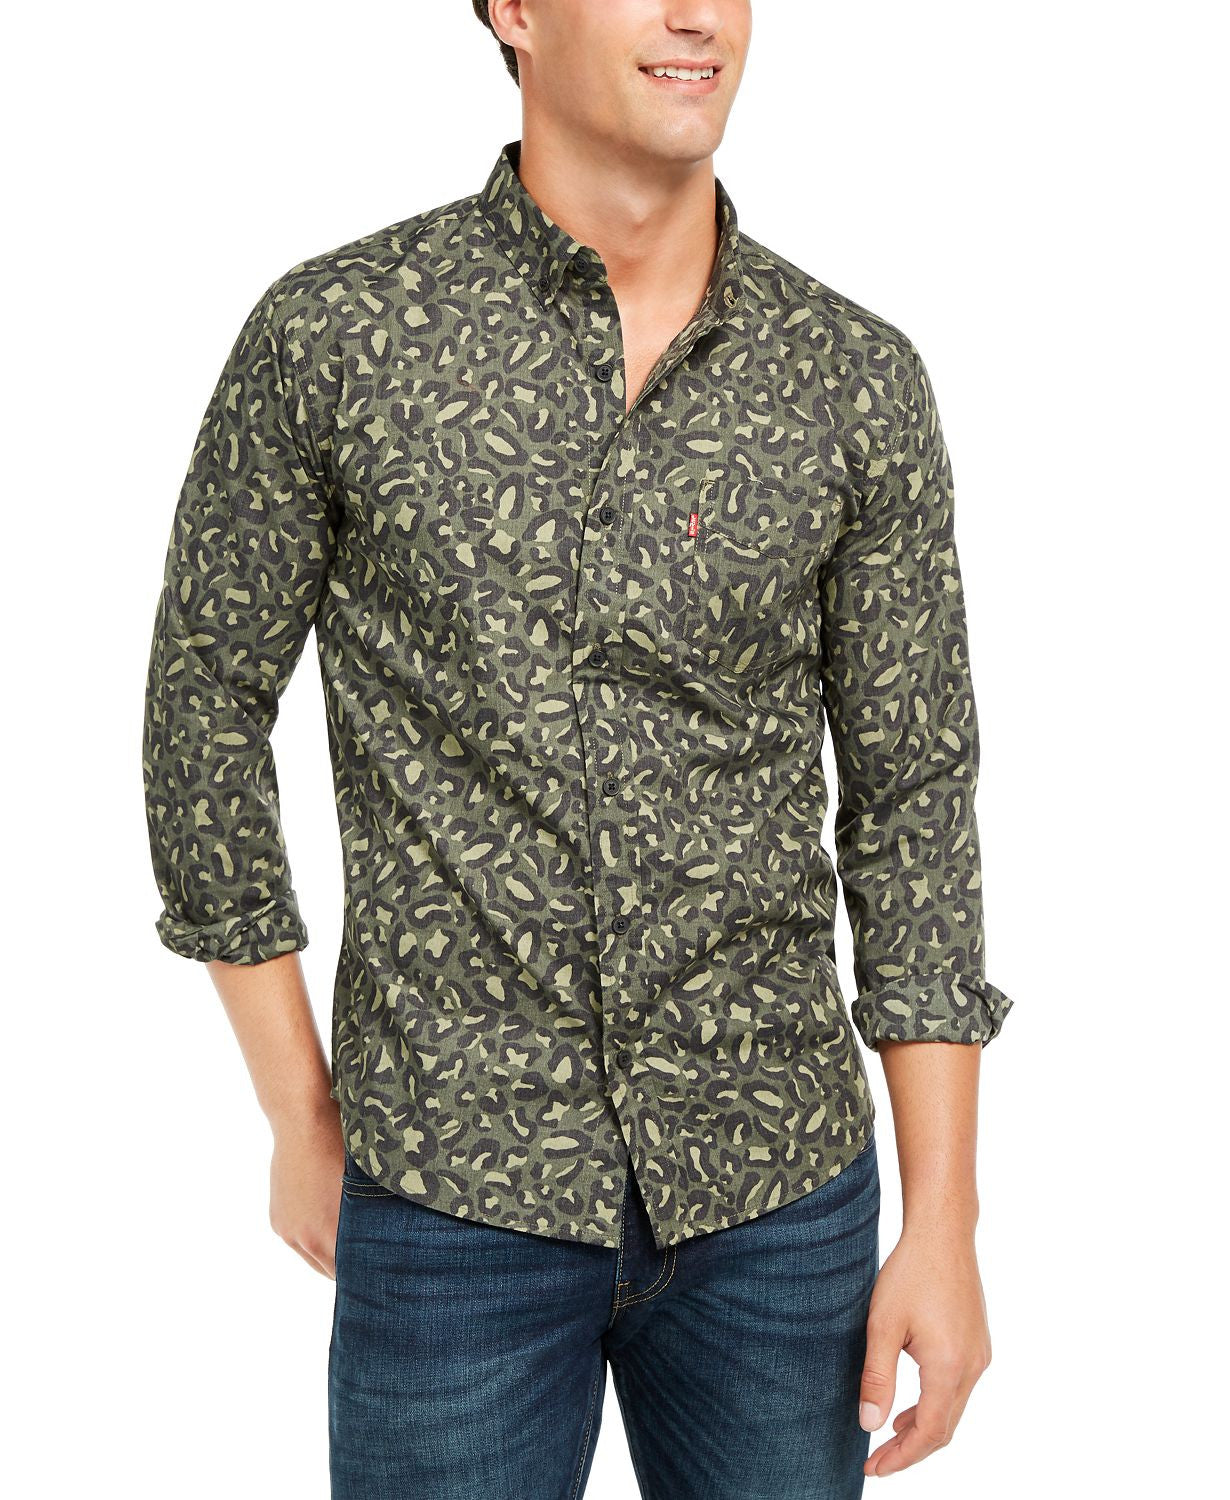 Levi's Animal Print Button-down Shirt Olive Night